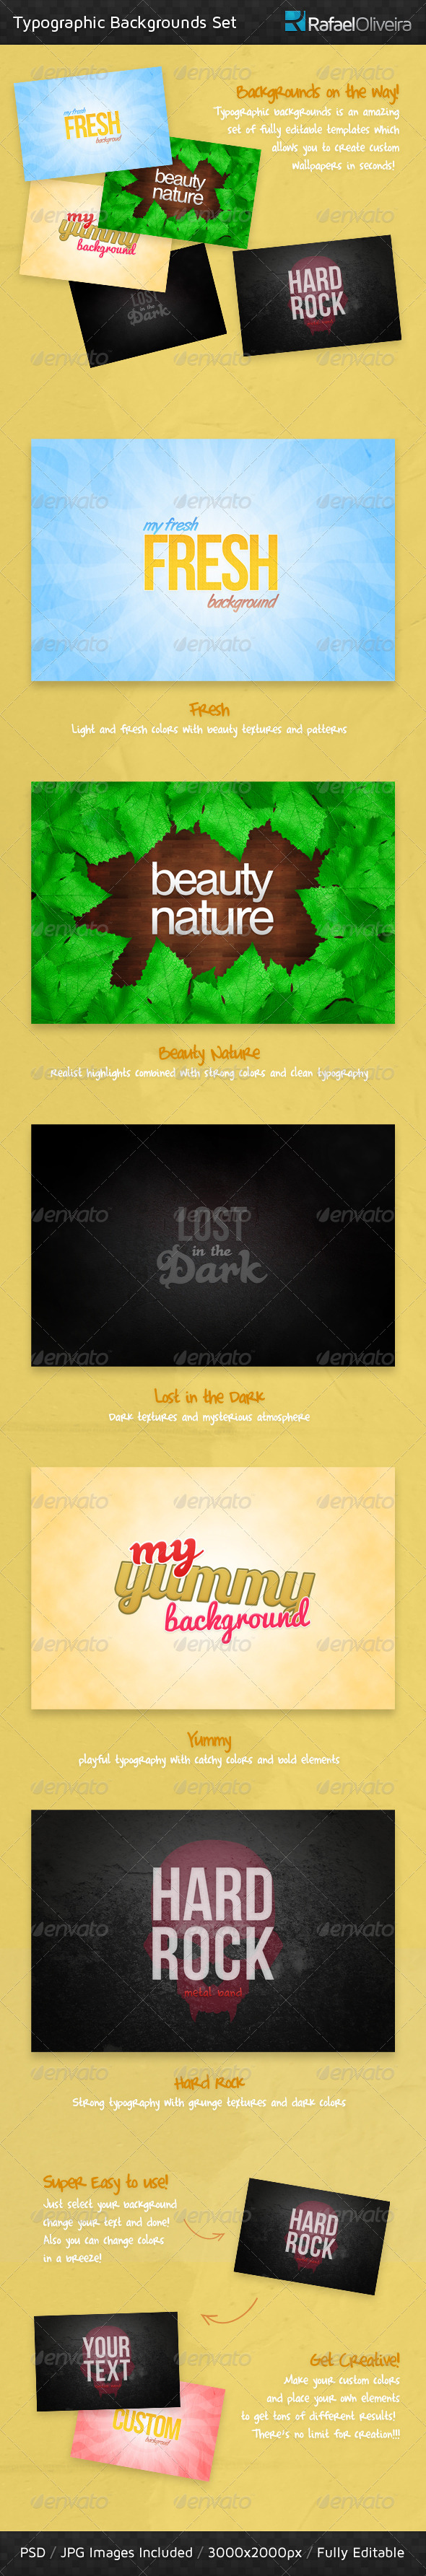 Typographic Backgrounds Set - Backgrounds Graphics